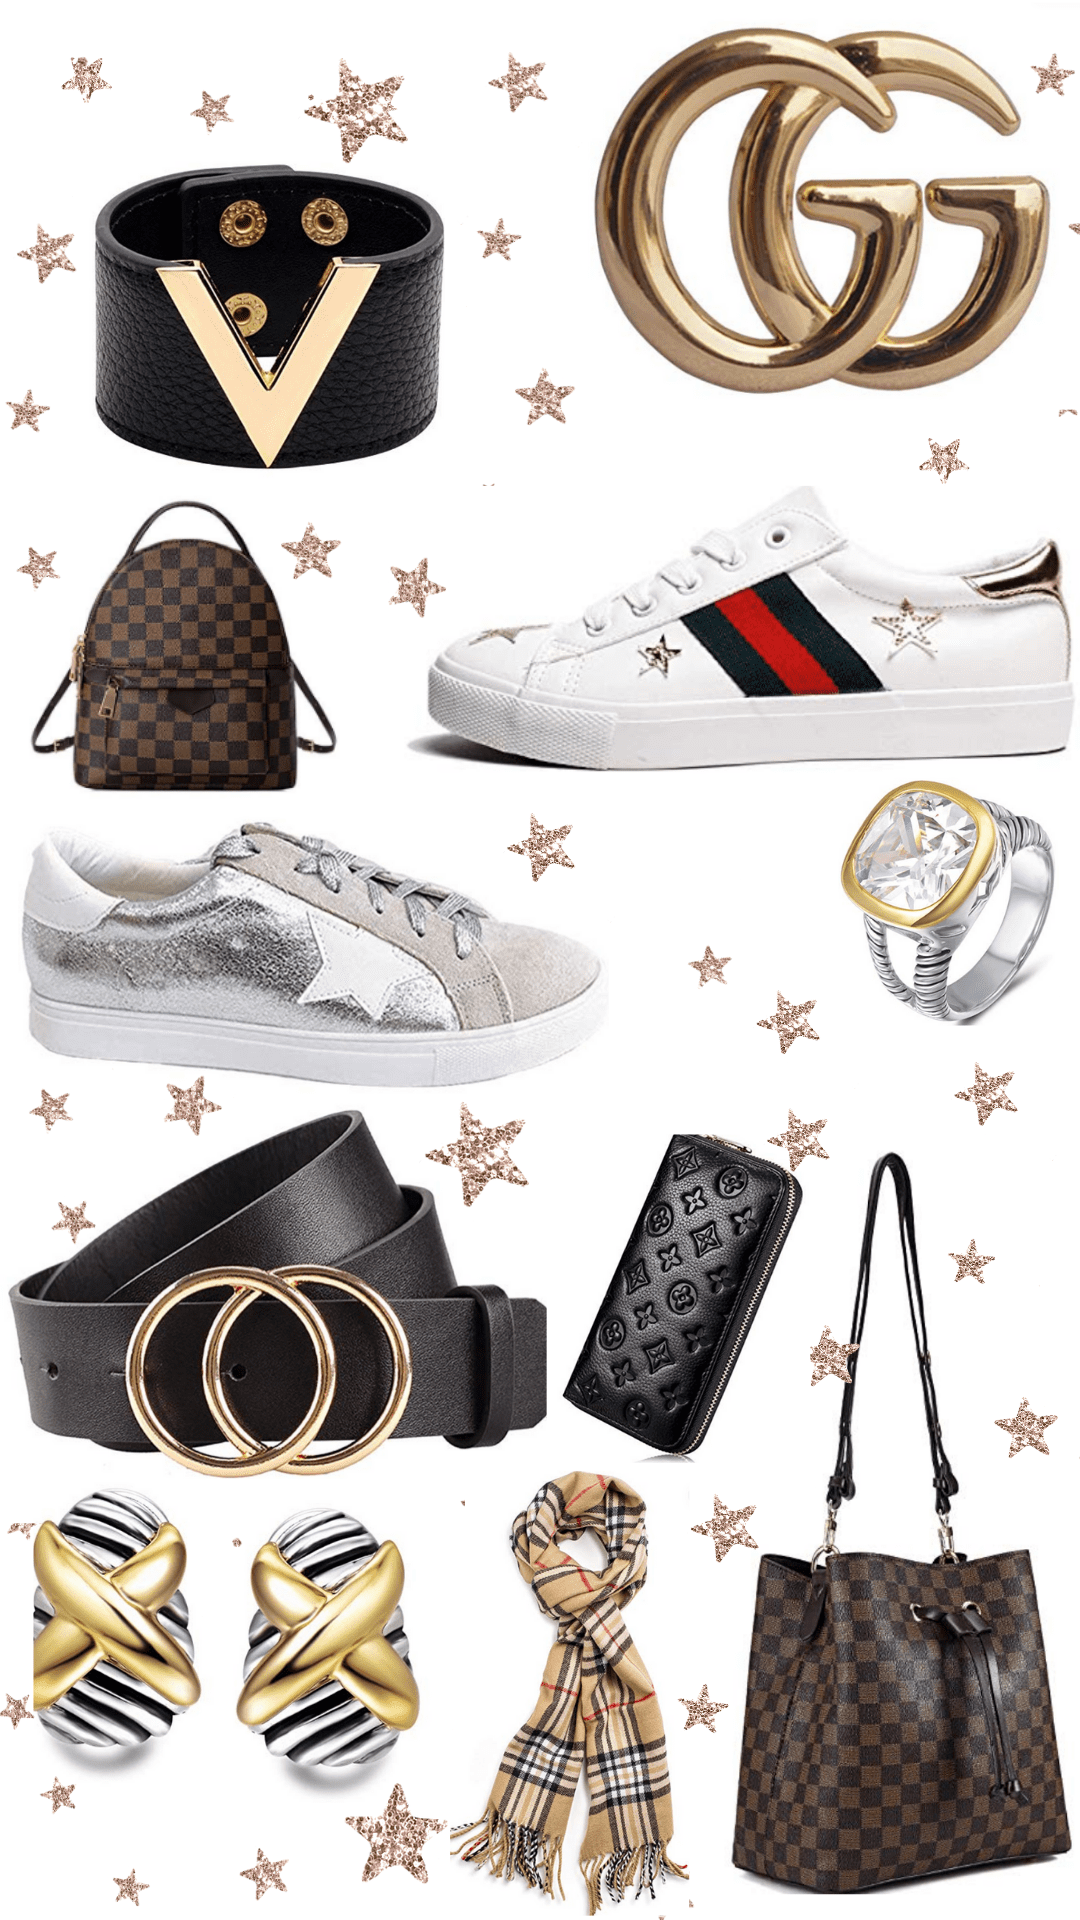 In this image, we found several different dupes from Amazon and added them in a collage. Dupes from Louis Vuitton, Burberry, Gucci, David Yurman, Golden Goose, and more. From jewelry to accessories, there is an array of different dupe finds.